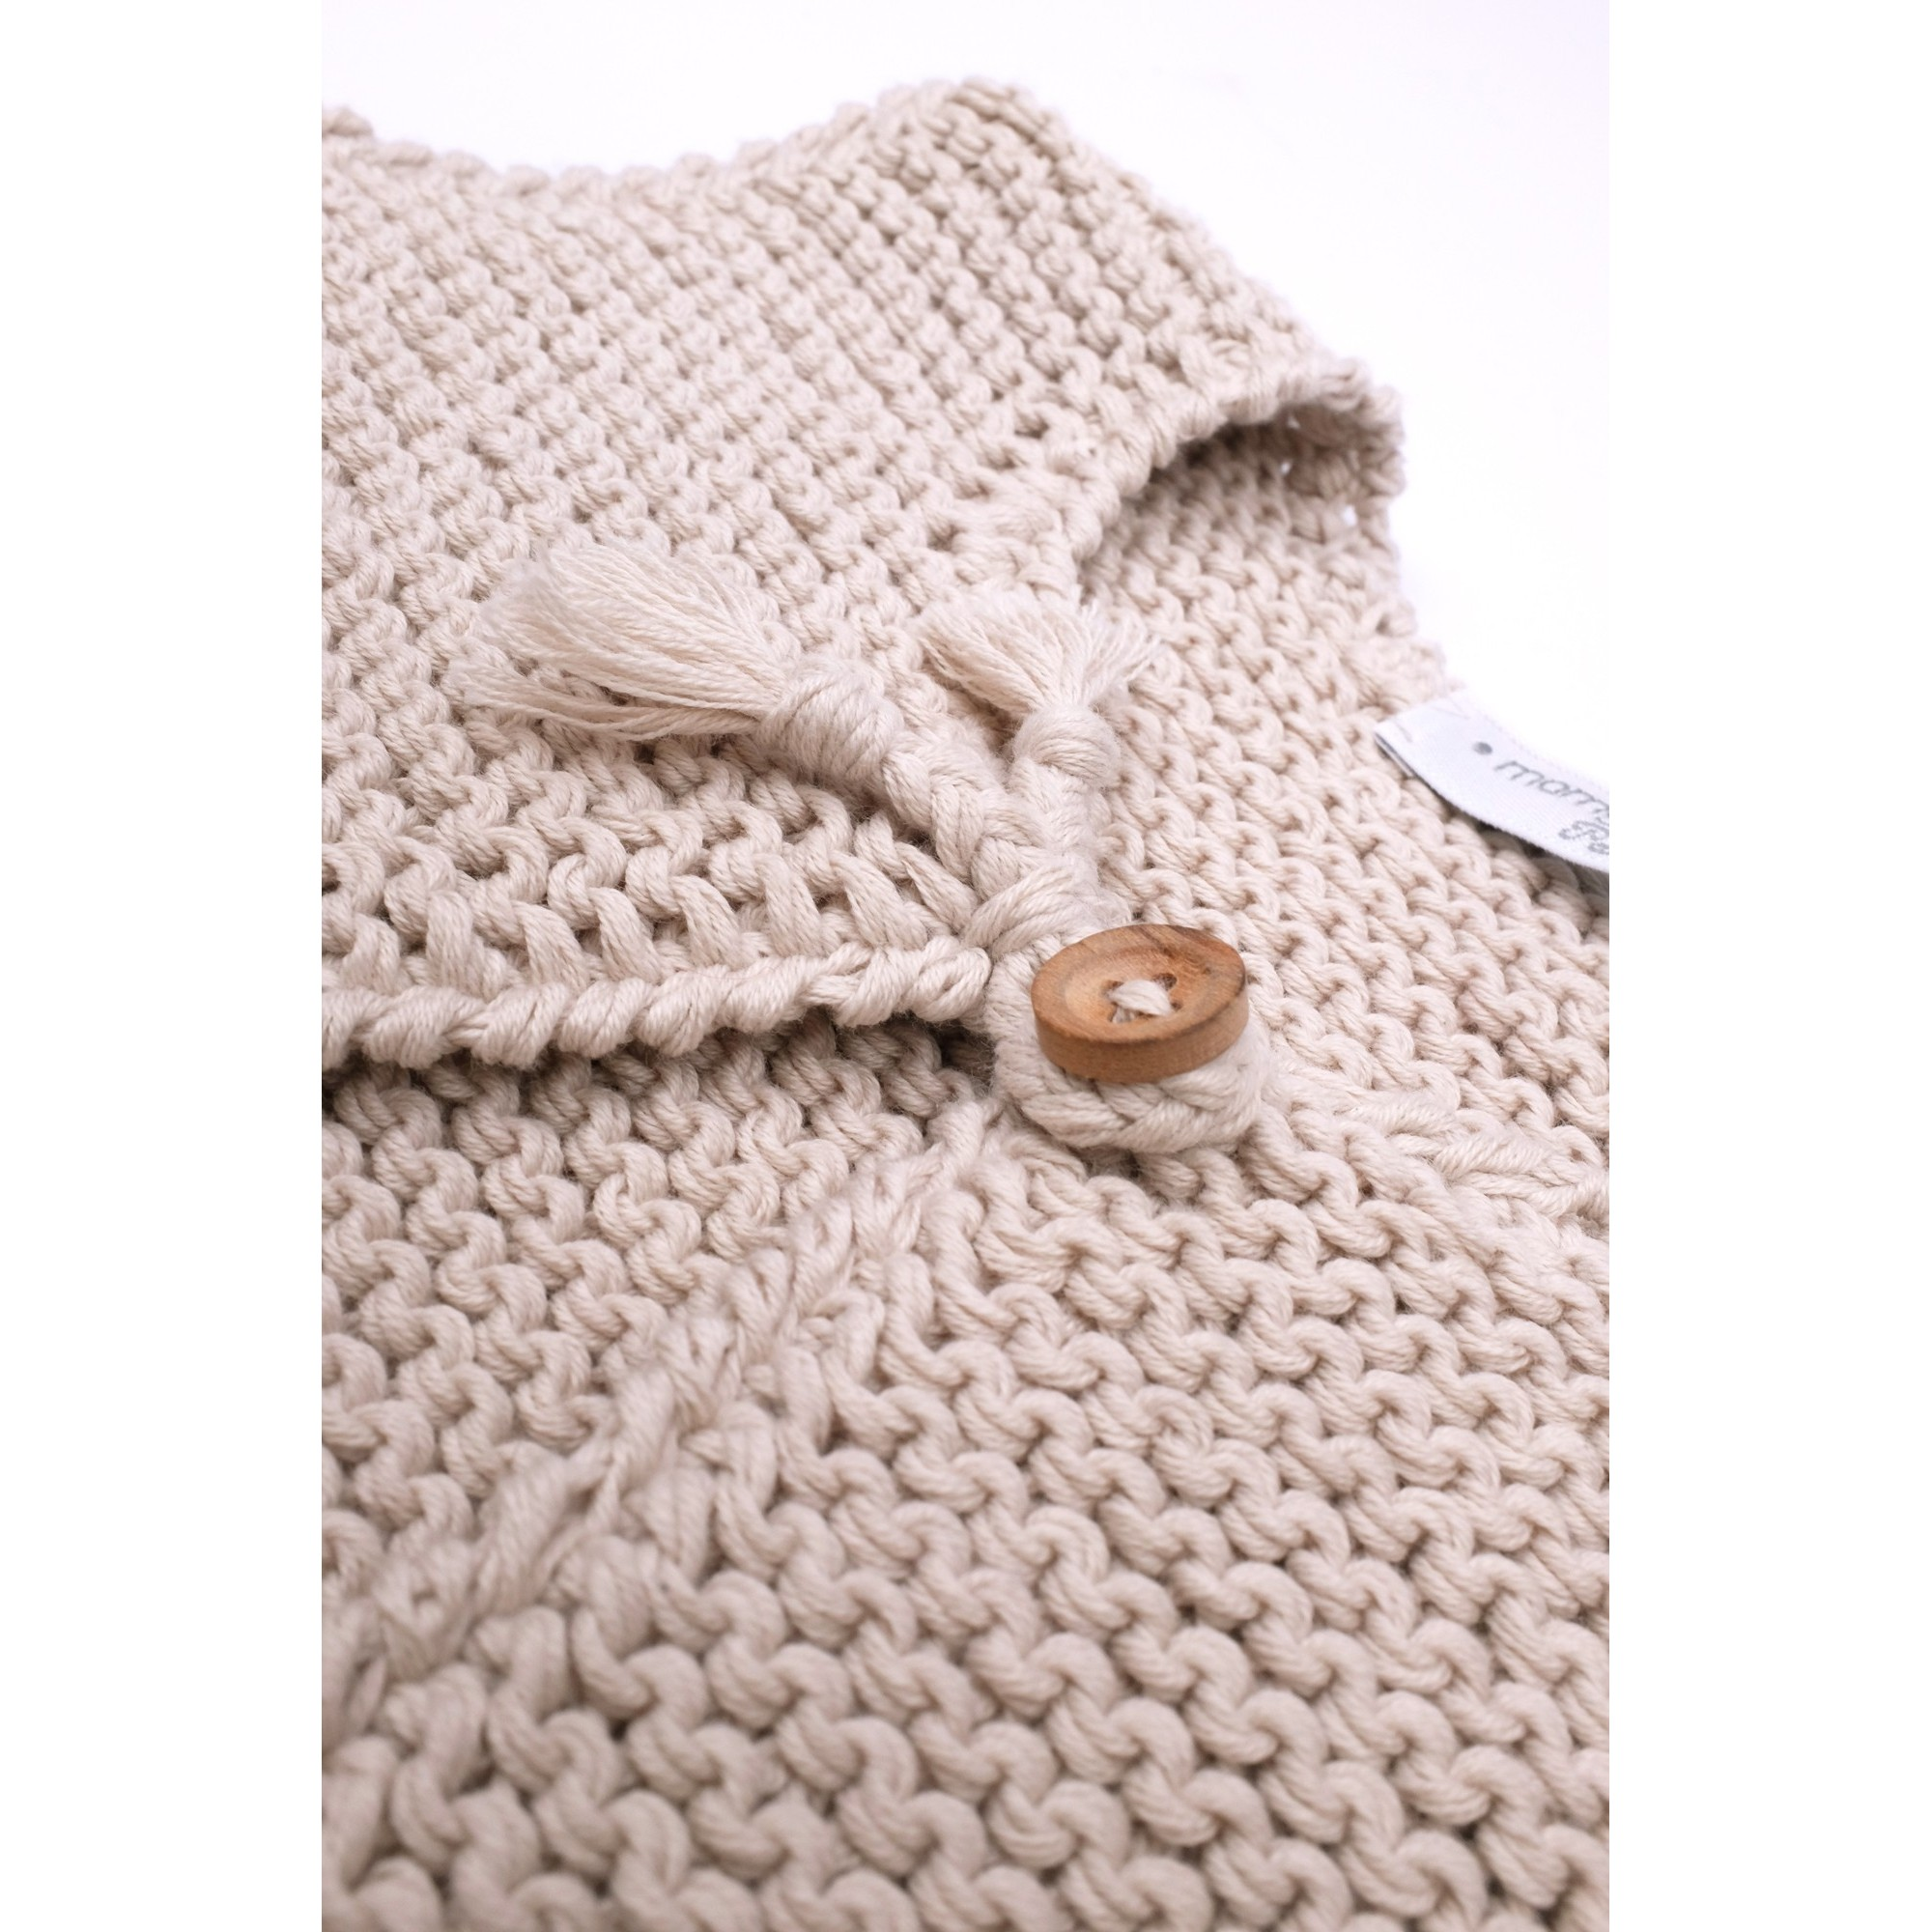 Granny\'s knitwear - Sand baby sleevless cardigan handknitted in ...